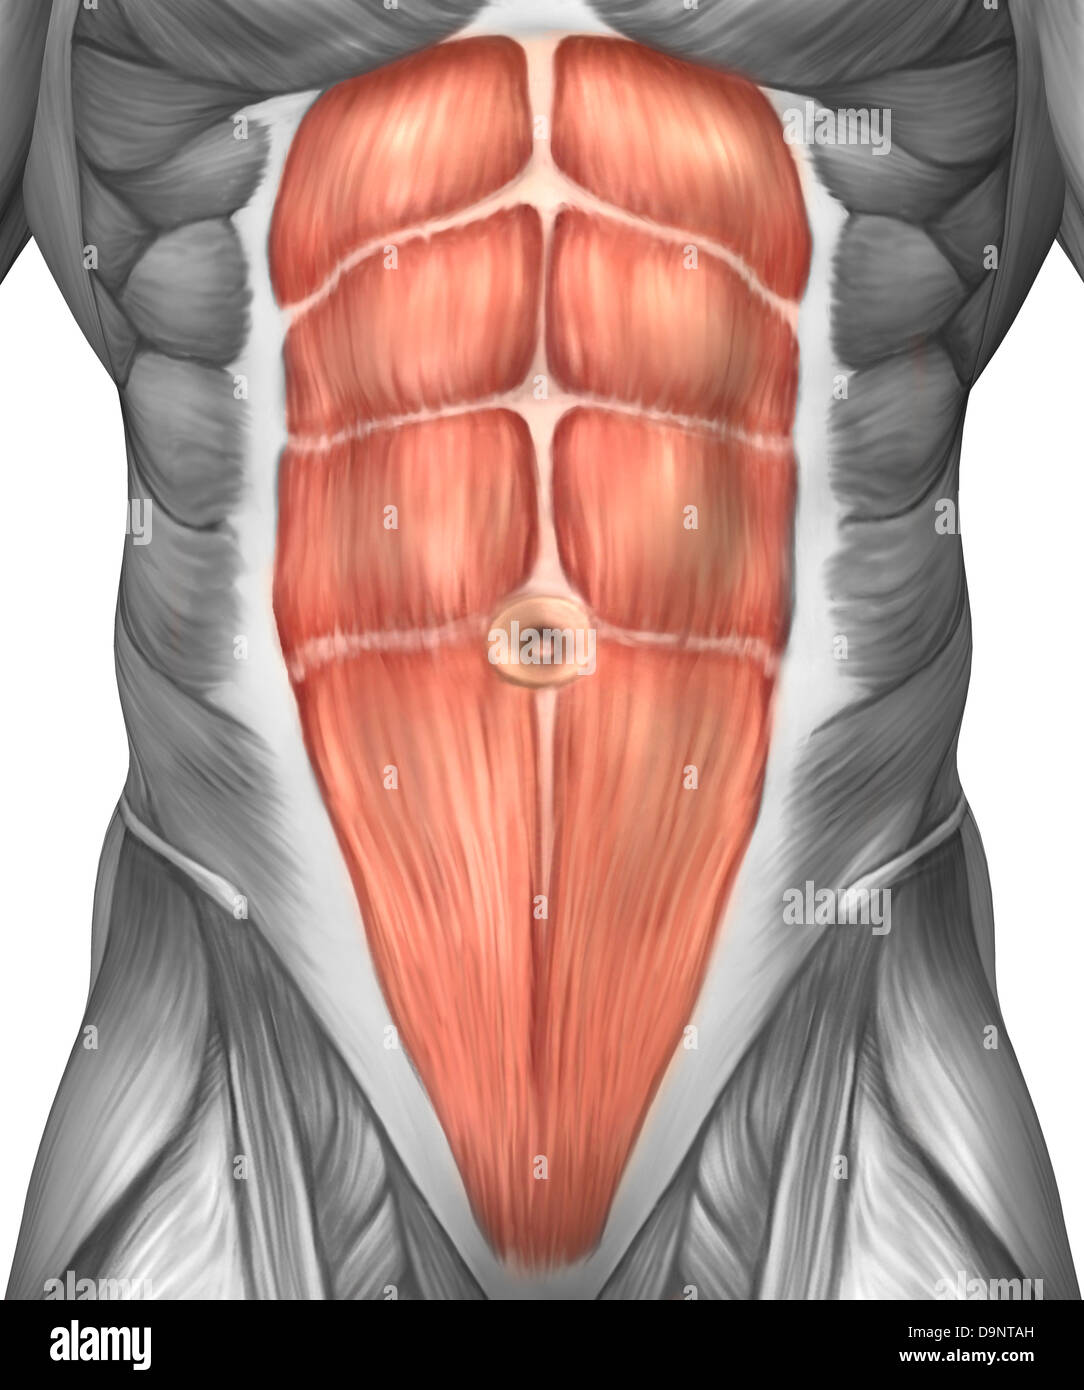 Close Up View Of Male Abdominal Muscles Stock Photo 57643113 Alamy